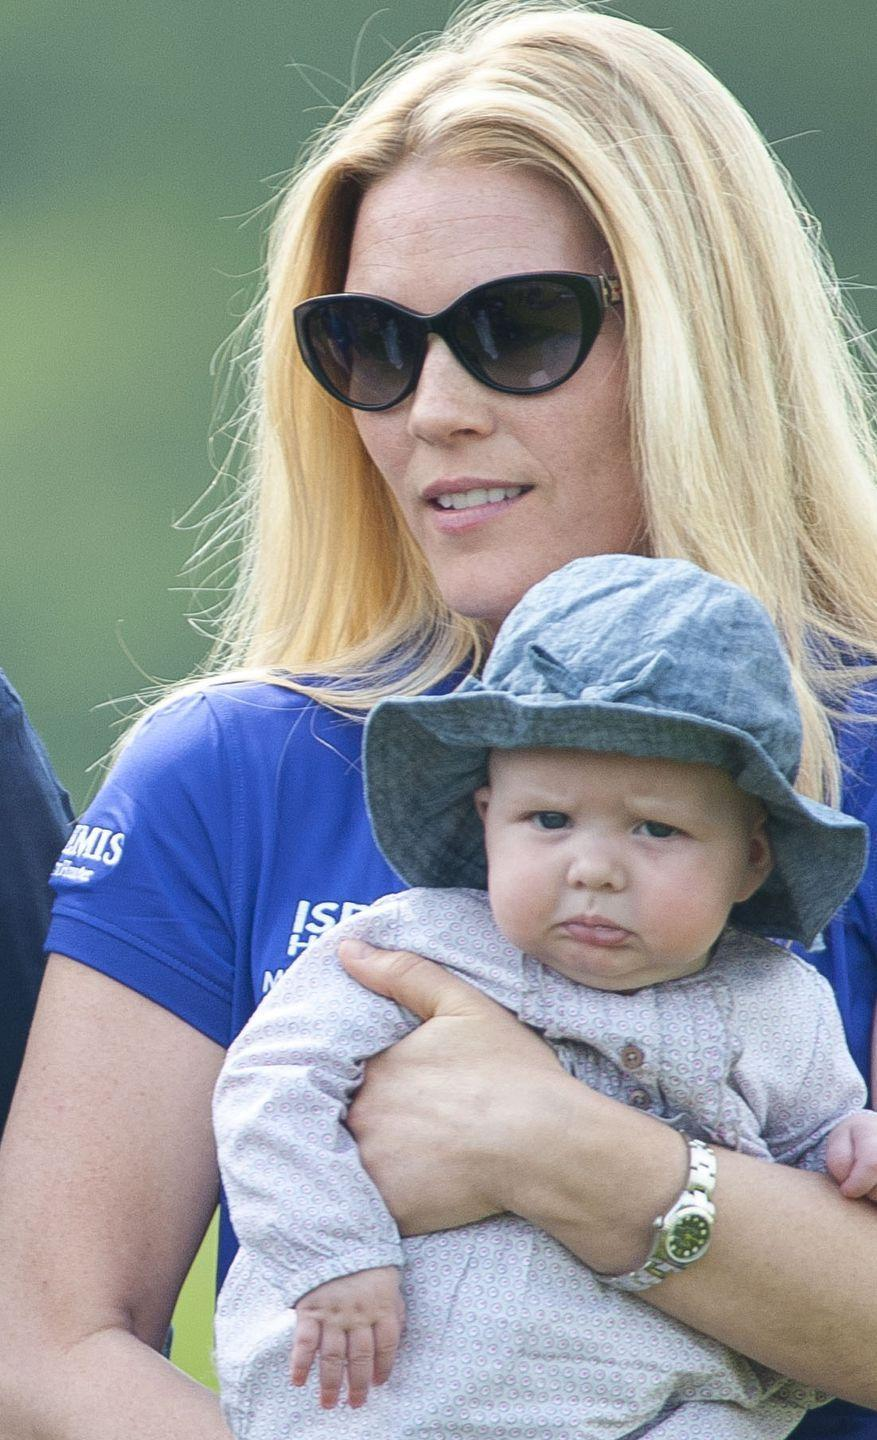 <p>Mia Tindall is held by mom Zara Phillips' sister-in-law, Autumn Phillips, during the Mike Tindall Celebrity Golf Classic at the Celtic Manor Resort of Newport, Wales in May 2014. Just look at that little pouty face!</p>